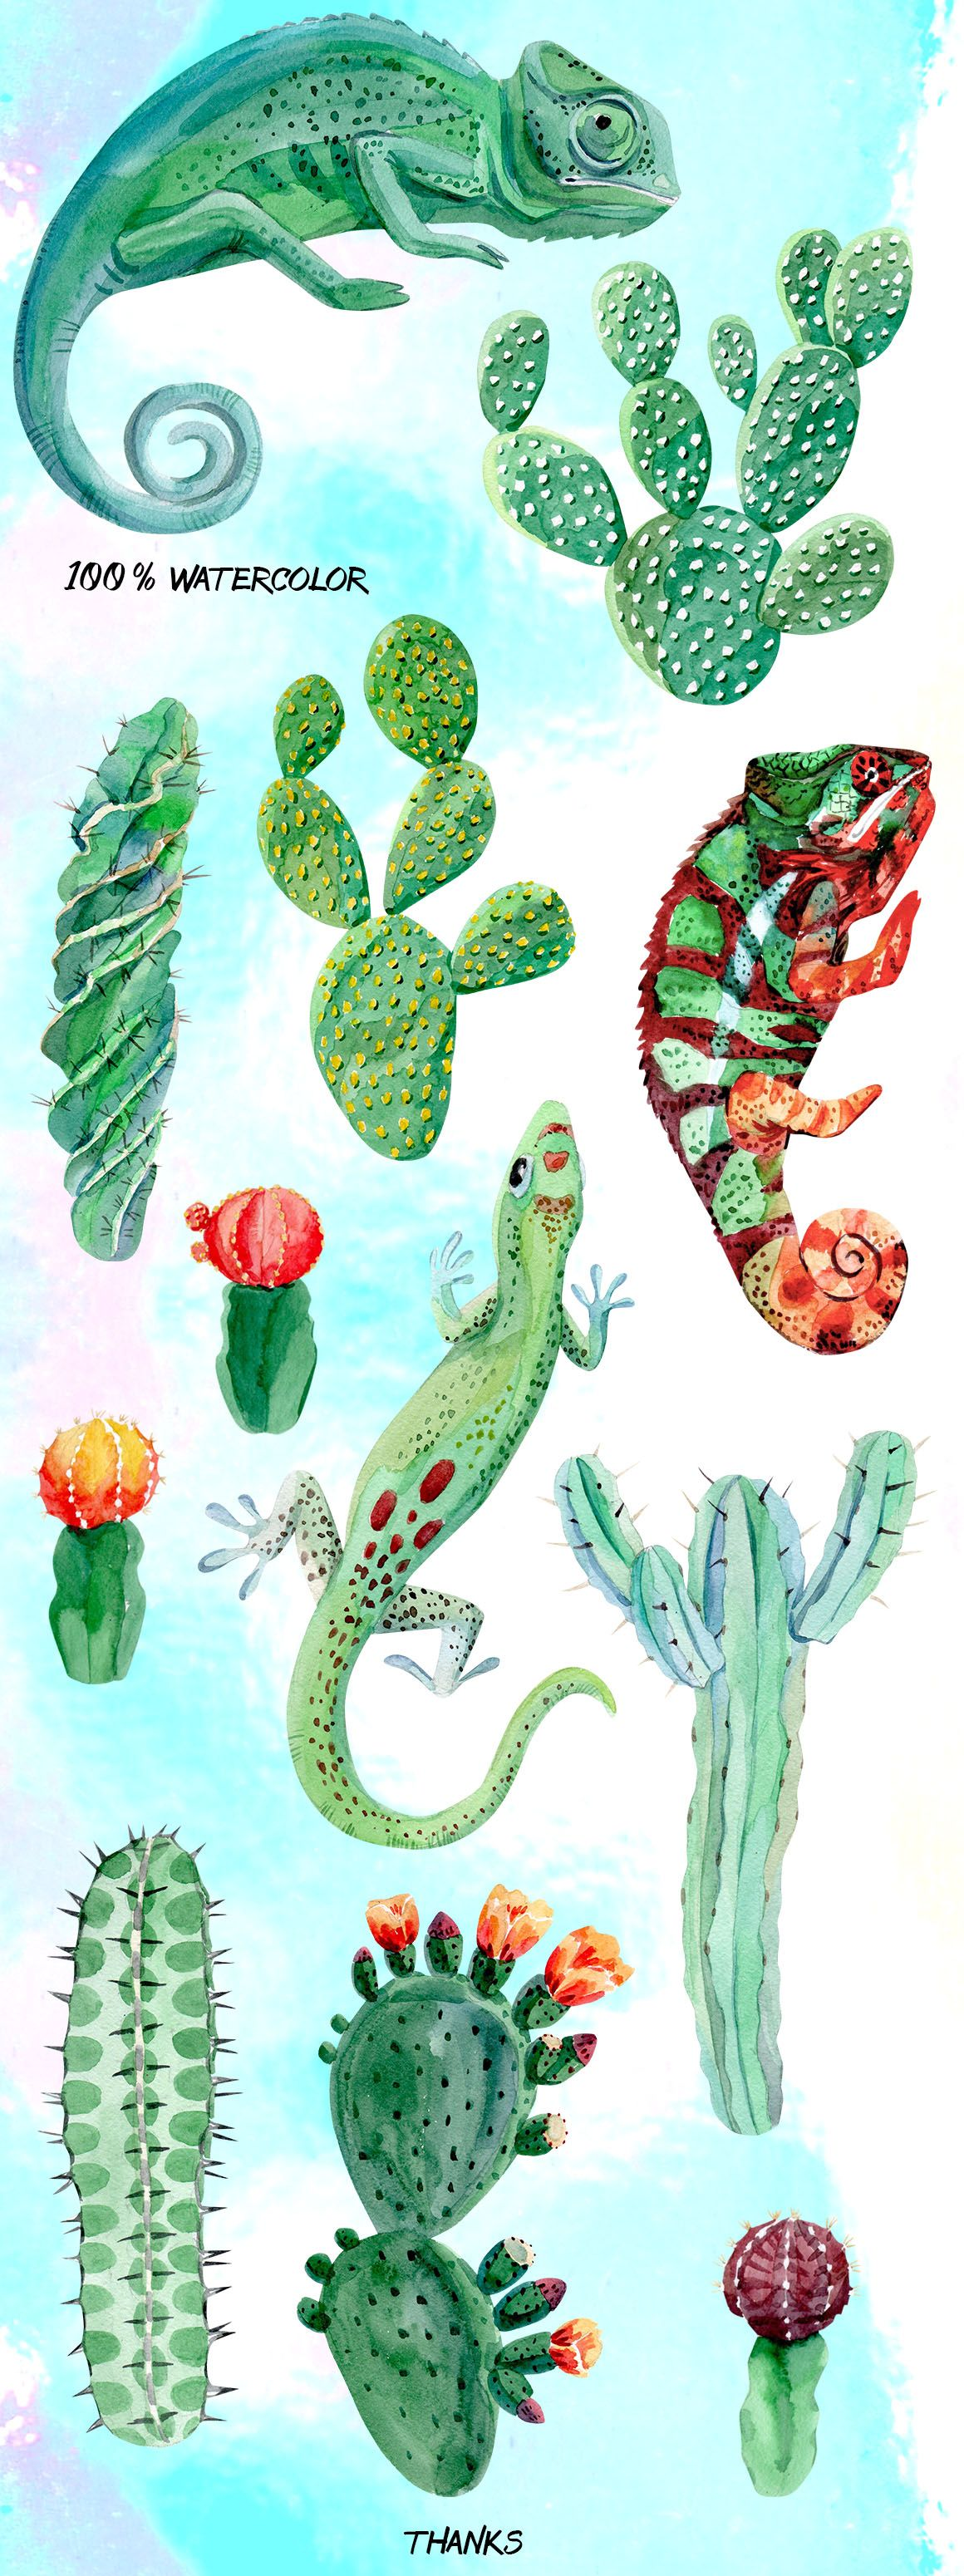 Chameleon and cactus. Watercolor set | Pinterest | Lagartos, Marrón ...